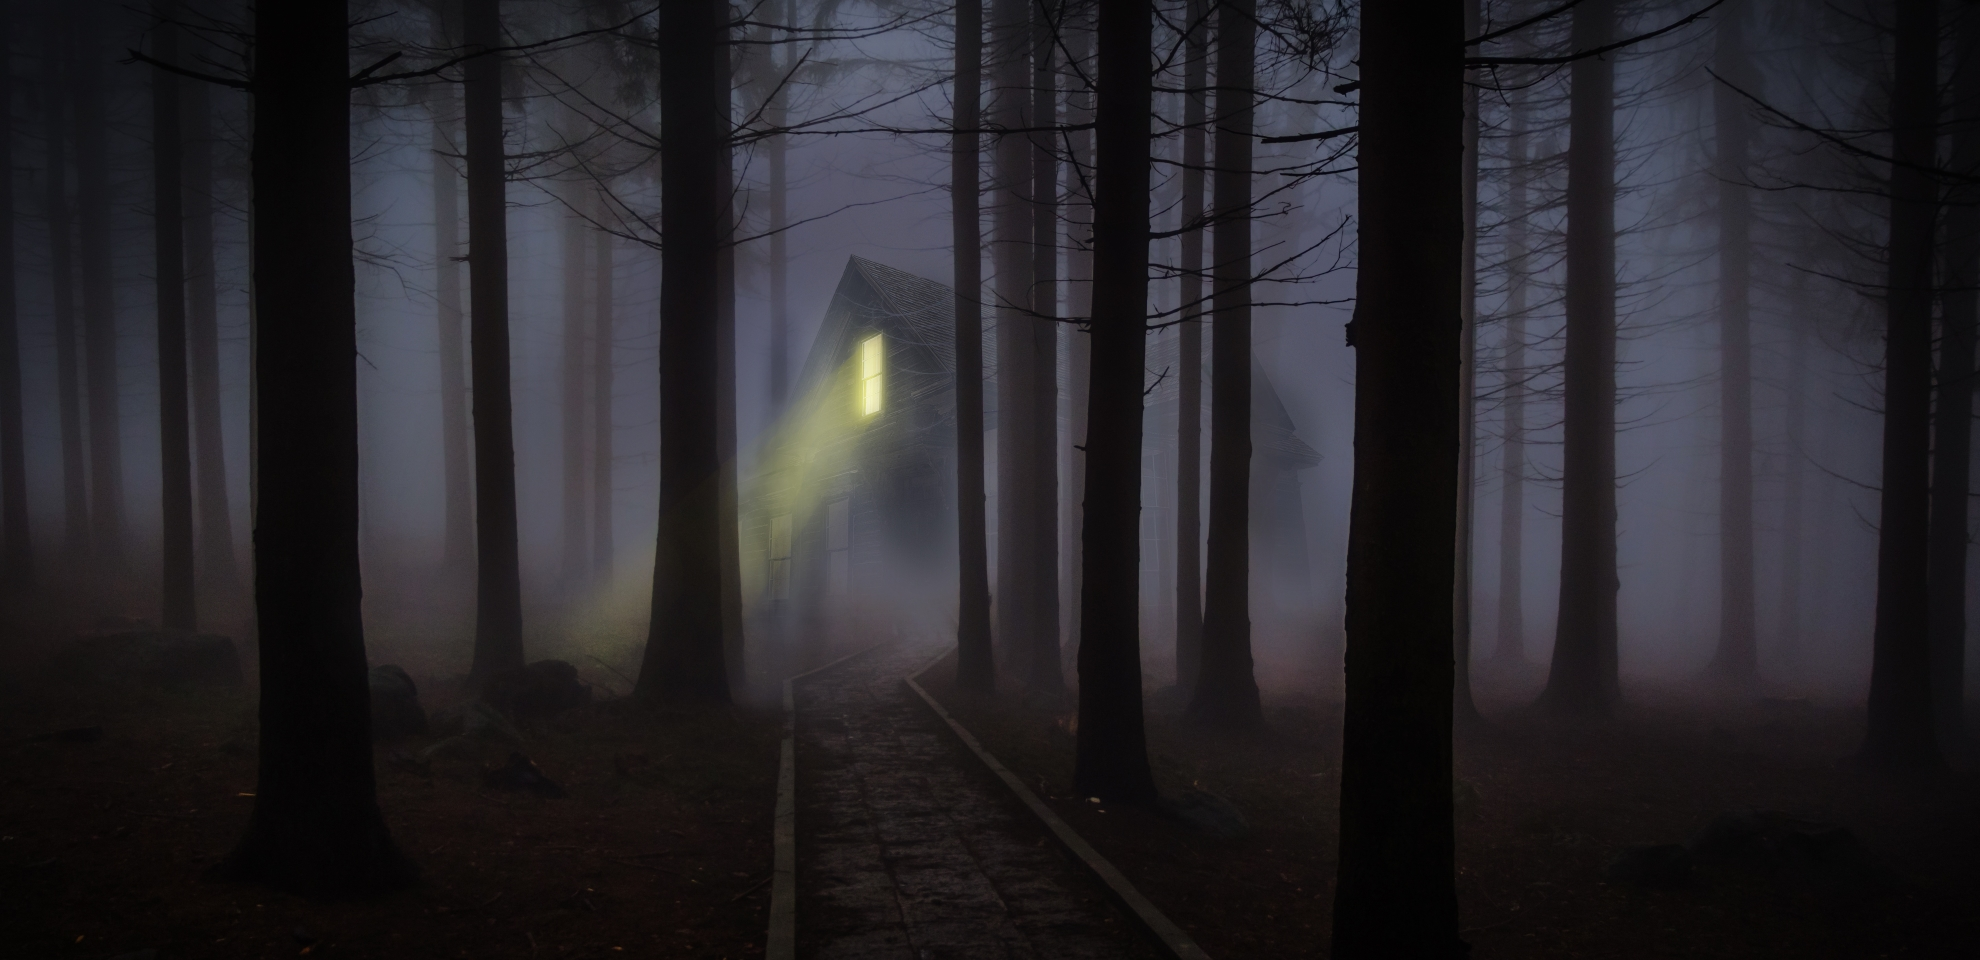 Halloween Horror Stories: 5 Business Mistakes that Could Happen to Any Company